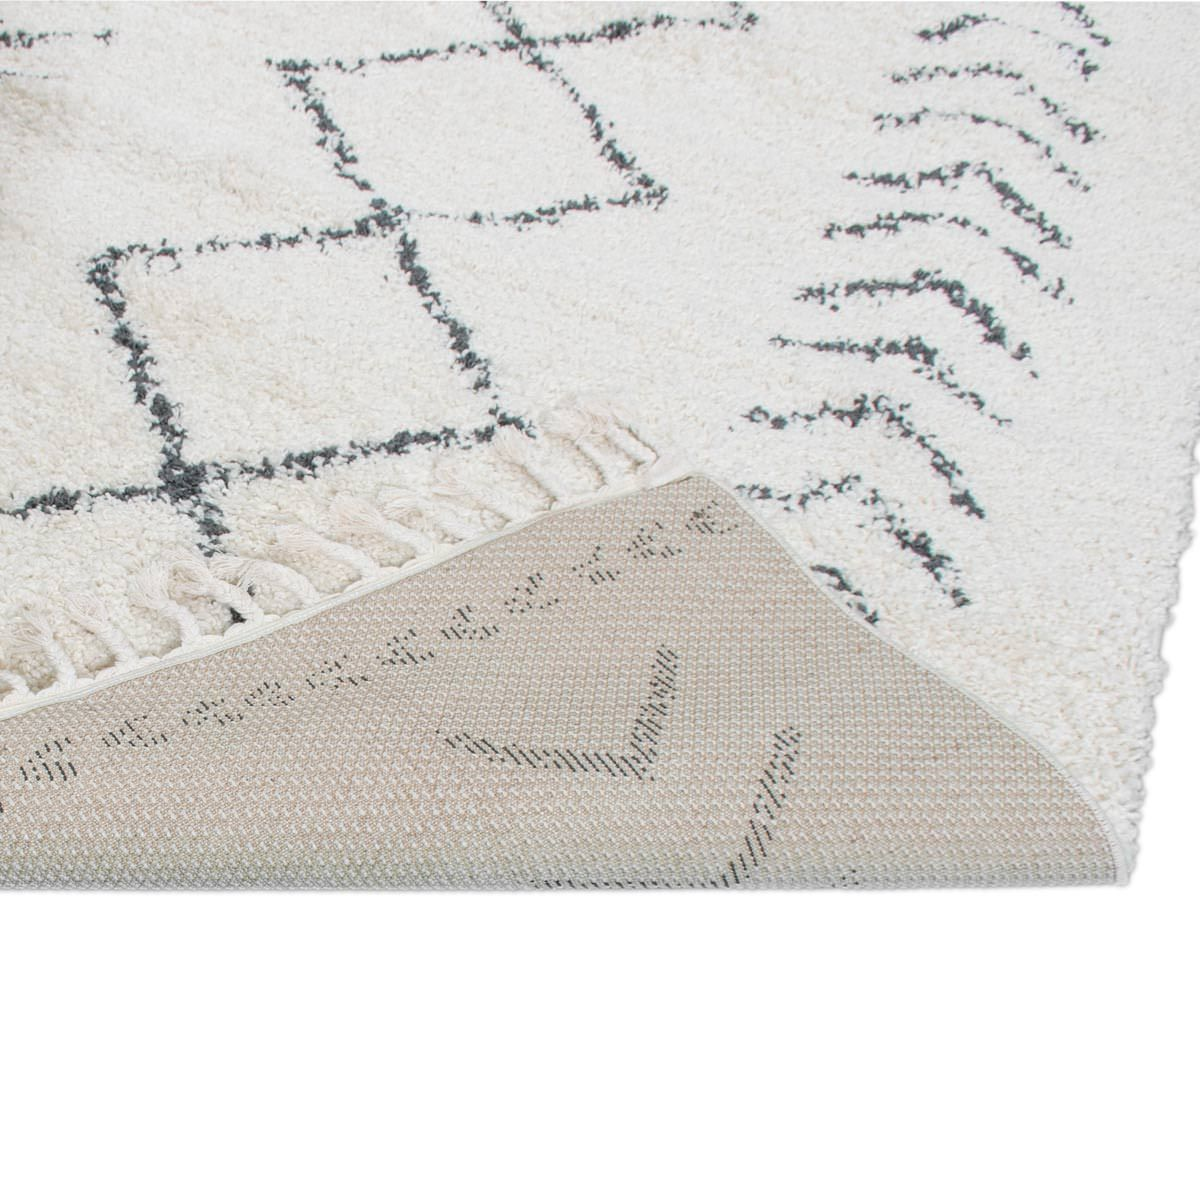 Shaggy Marrakech Rug 04 Cream/Black Runner 2